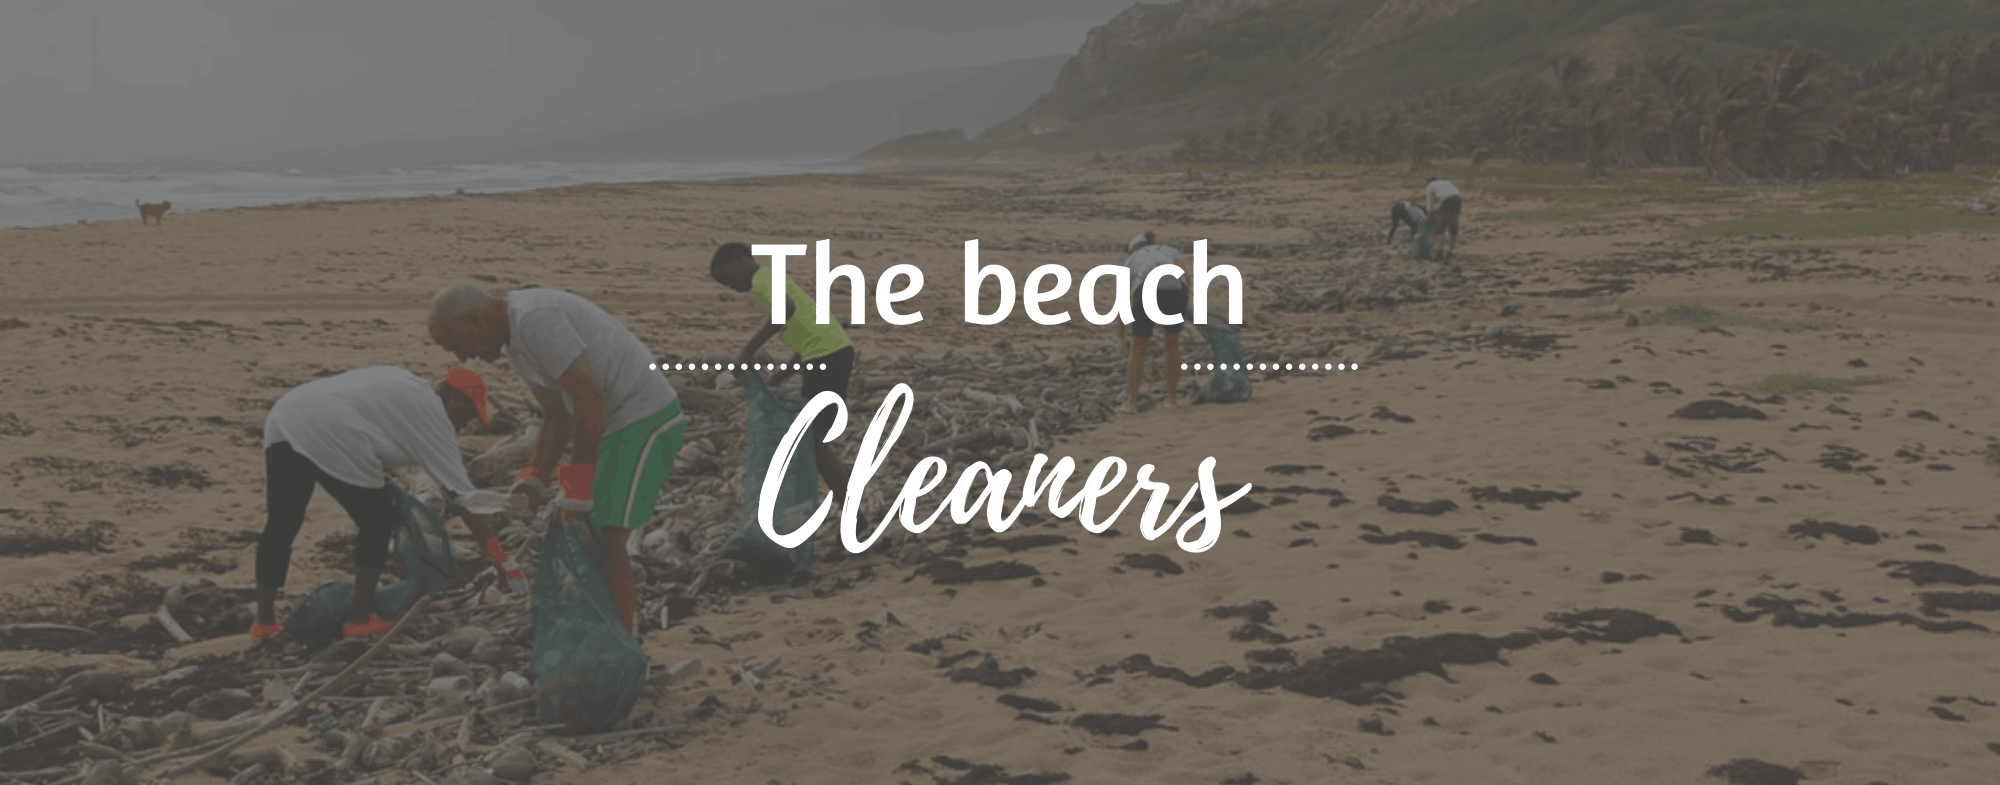 team-building-the-beach-cleaners-1